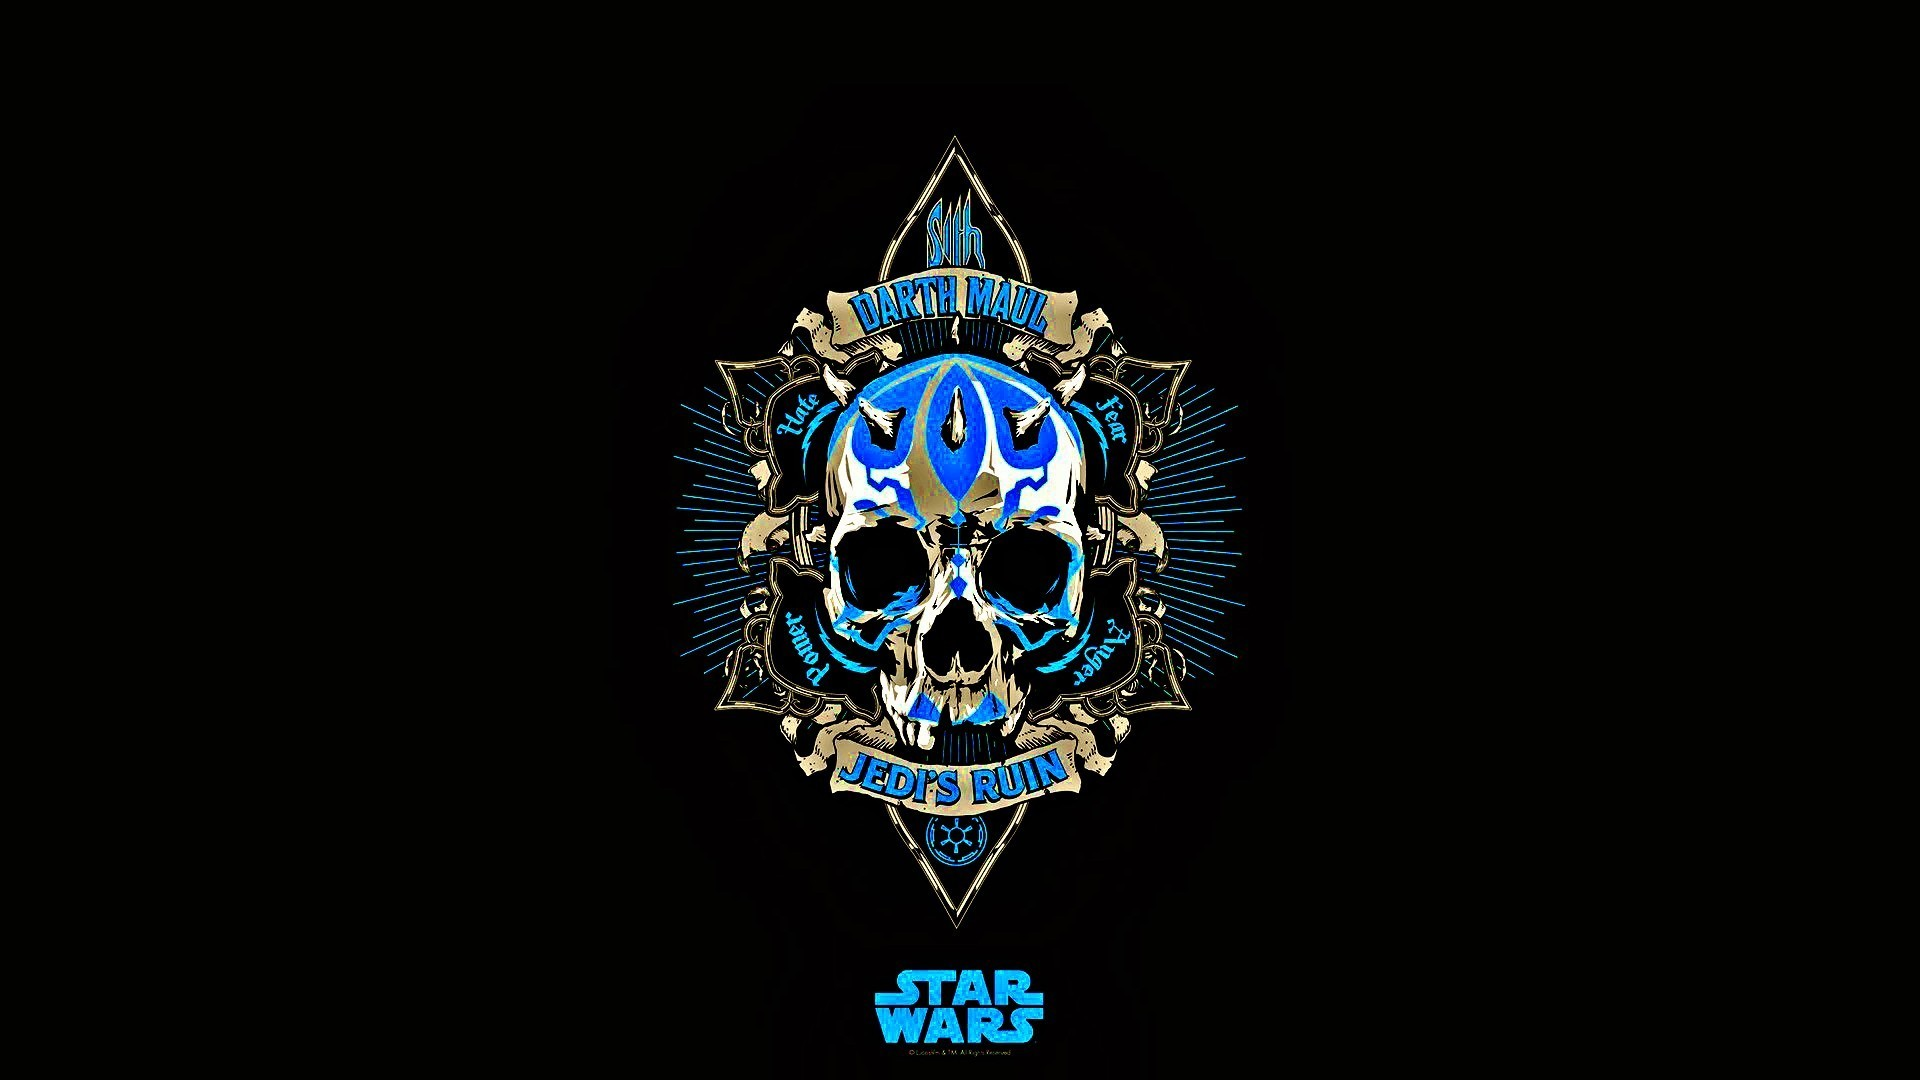 Res: 1920x1080, Star Wars, Jedi, Skull, Blue, Black, Darth Maul, Minimalism Wallpapers HD /  Desktop and Mobile Backgrounds